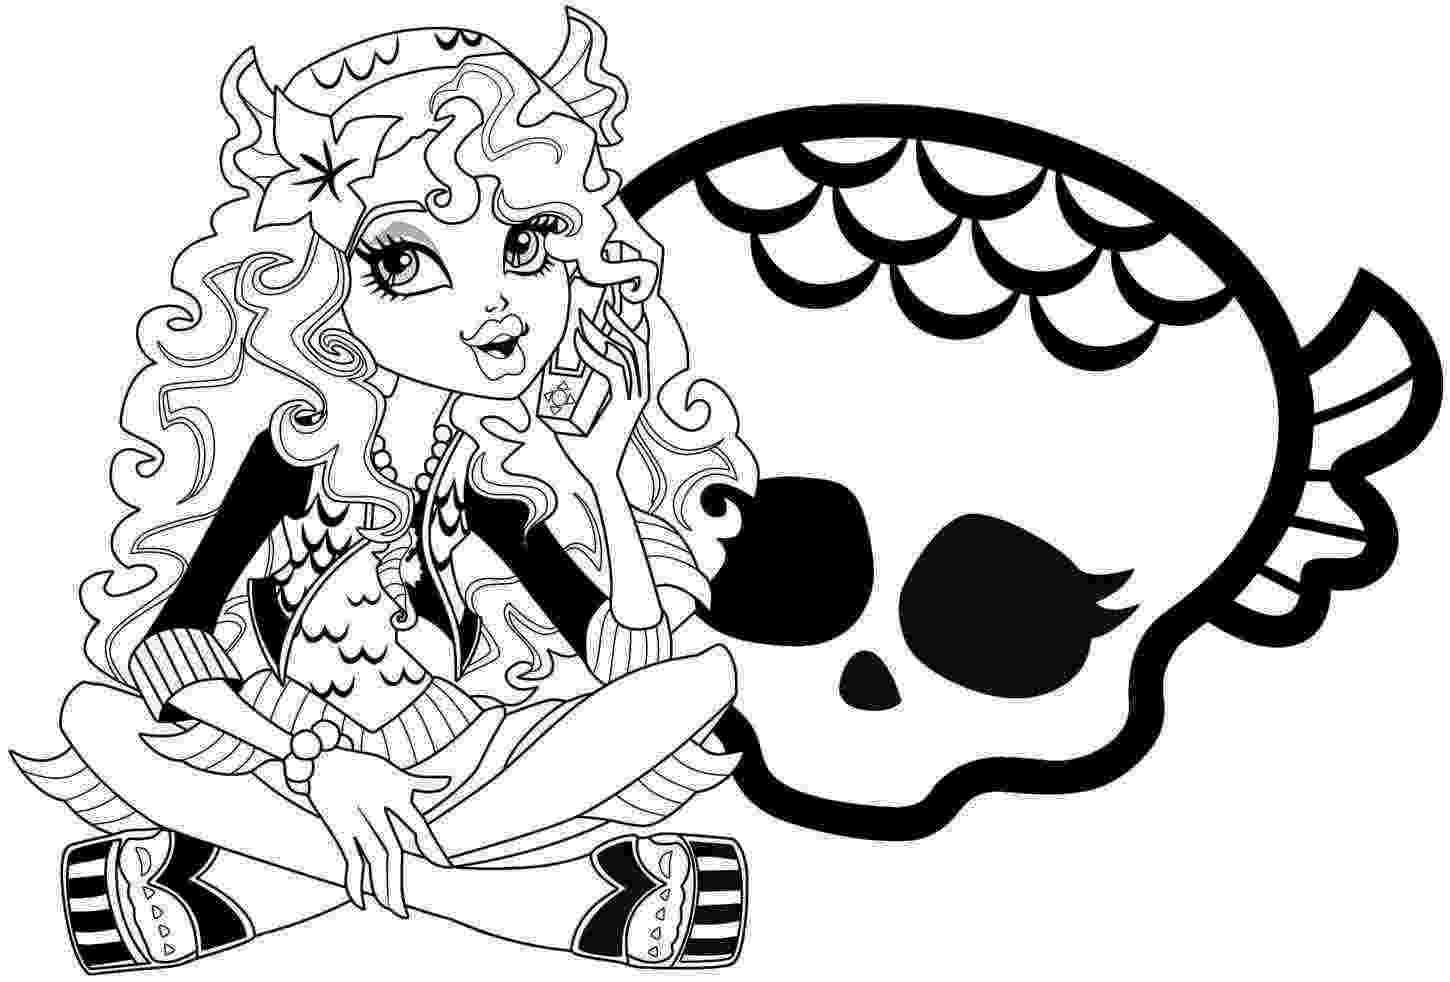 monster high colouring sheets coloring pages monster high coloring pages free and printable sheets monster colouring high